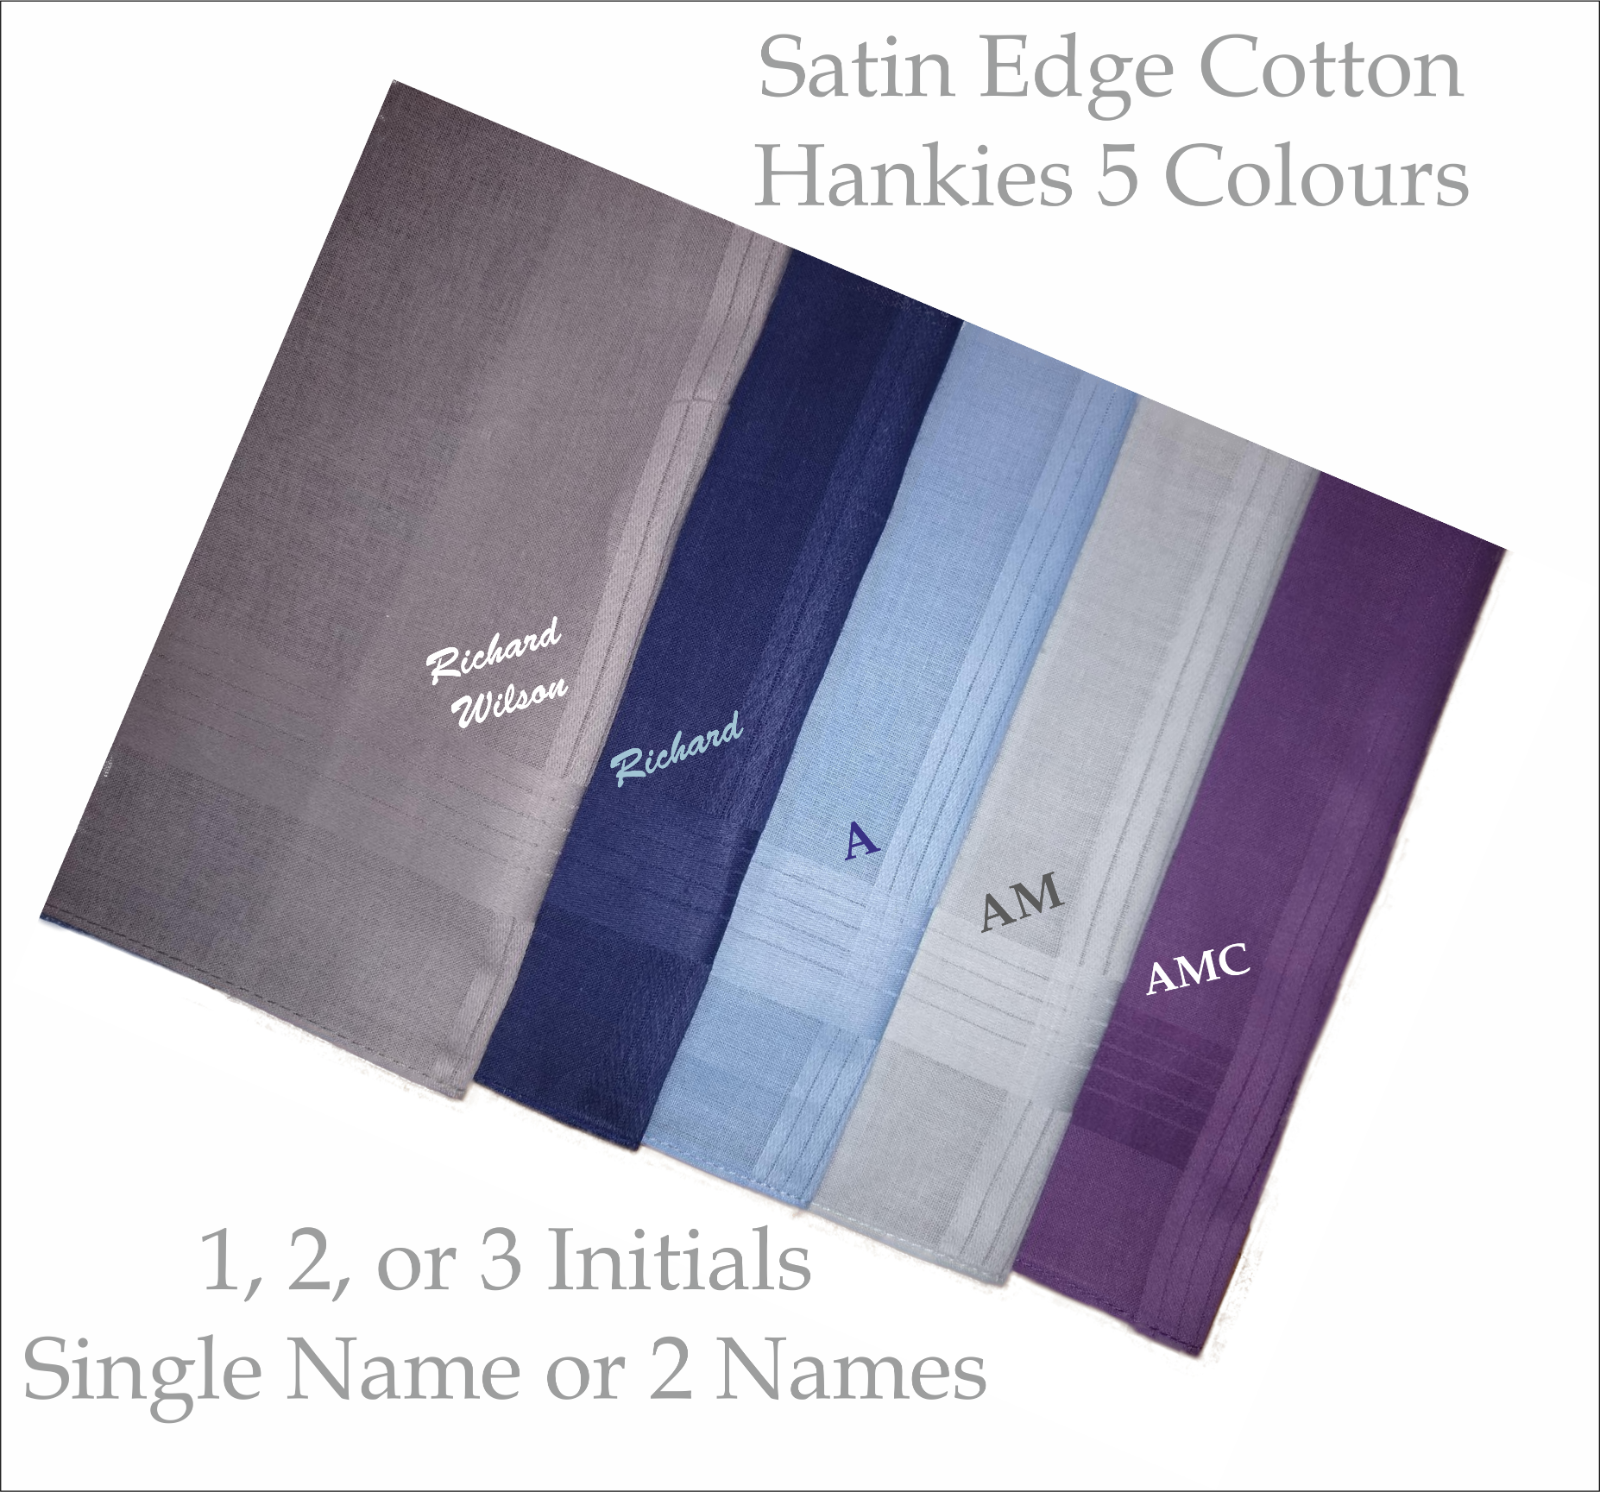 Monogram Embroidered Handkerchiefs Hankies 5 Colours 1,2,or 3 Initials or Name